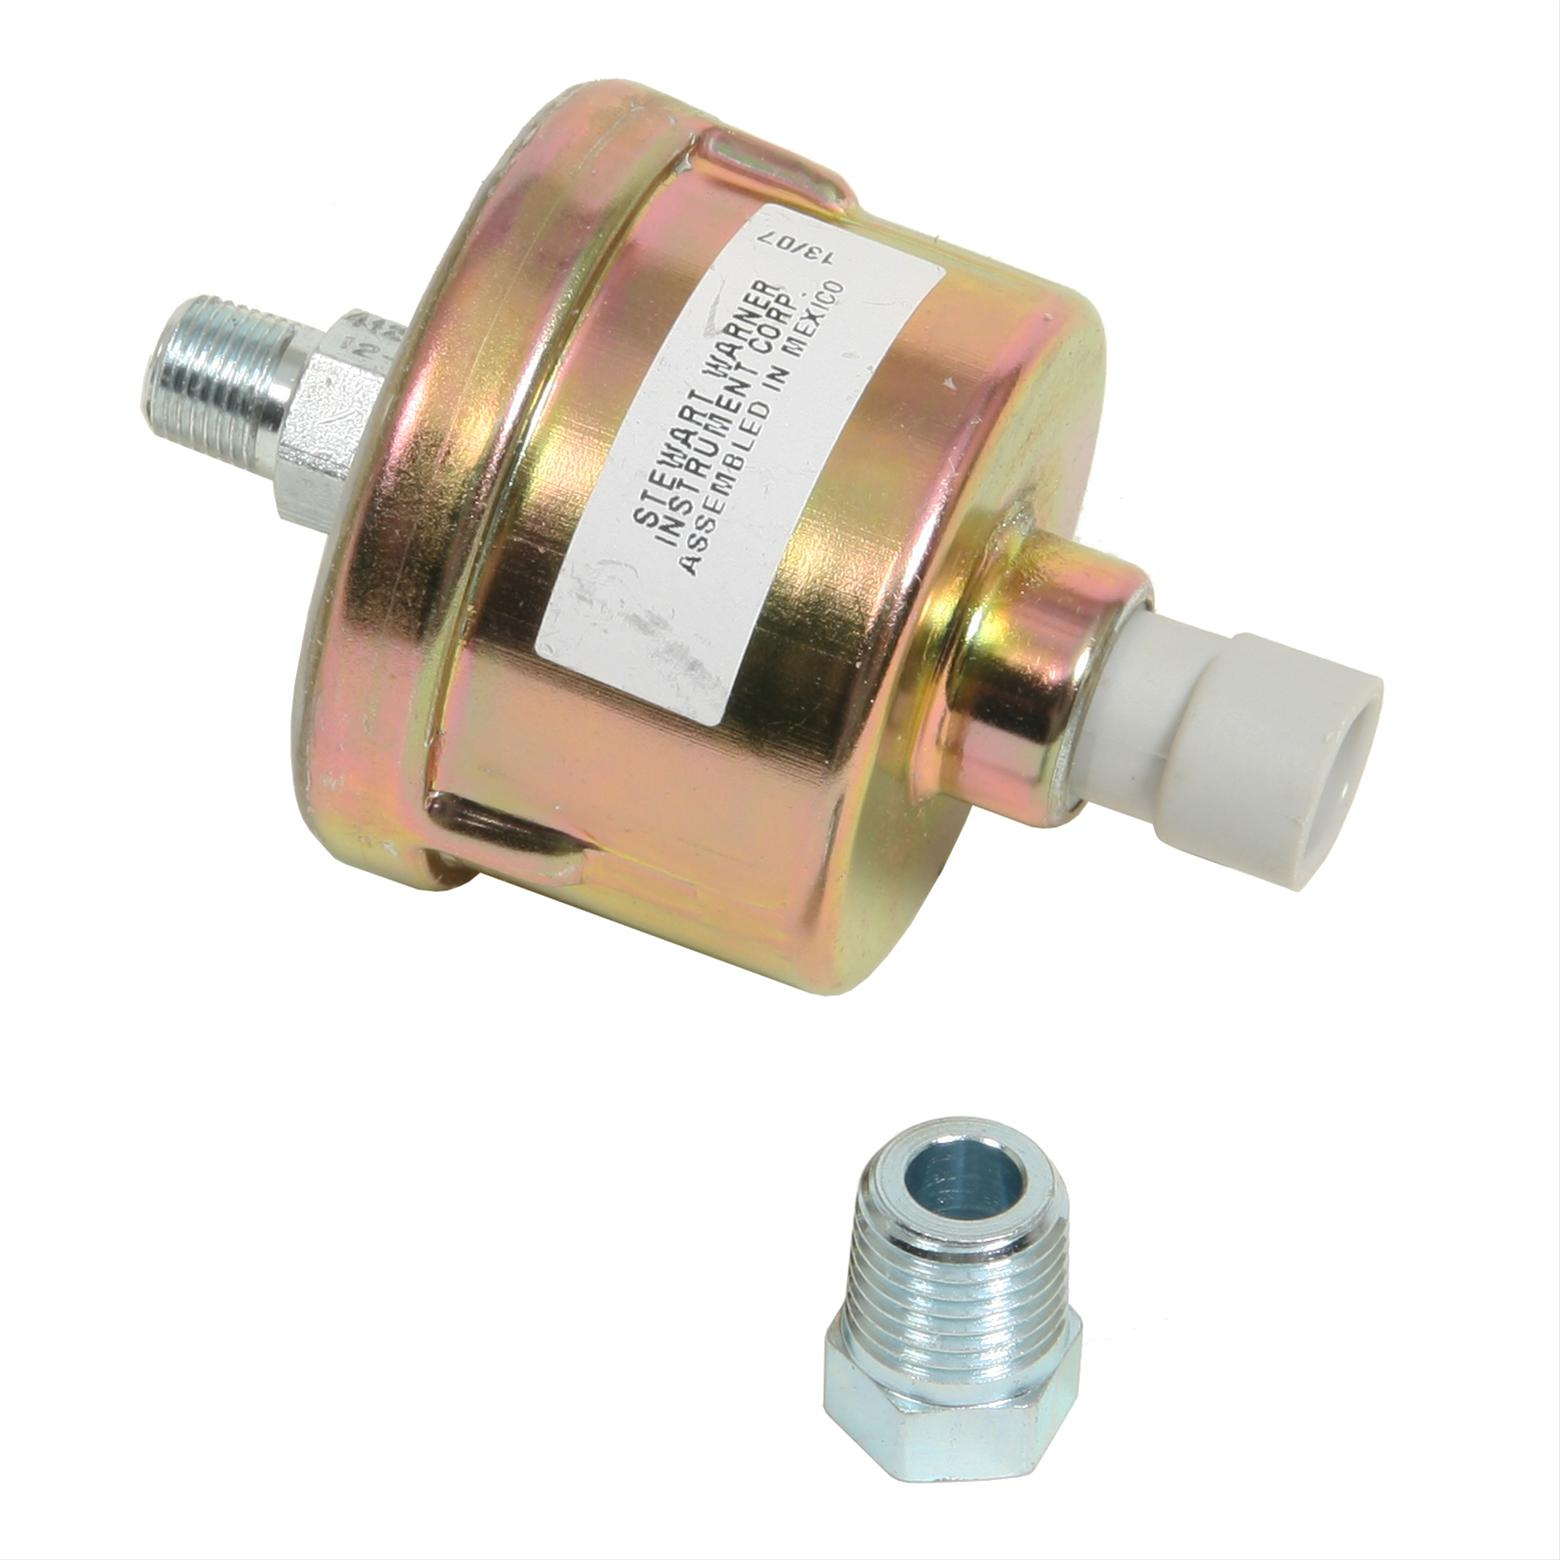 sww-82894_xl Surprising Tvr Griffith Oil Pressure Sender Cars Trend